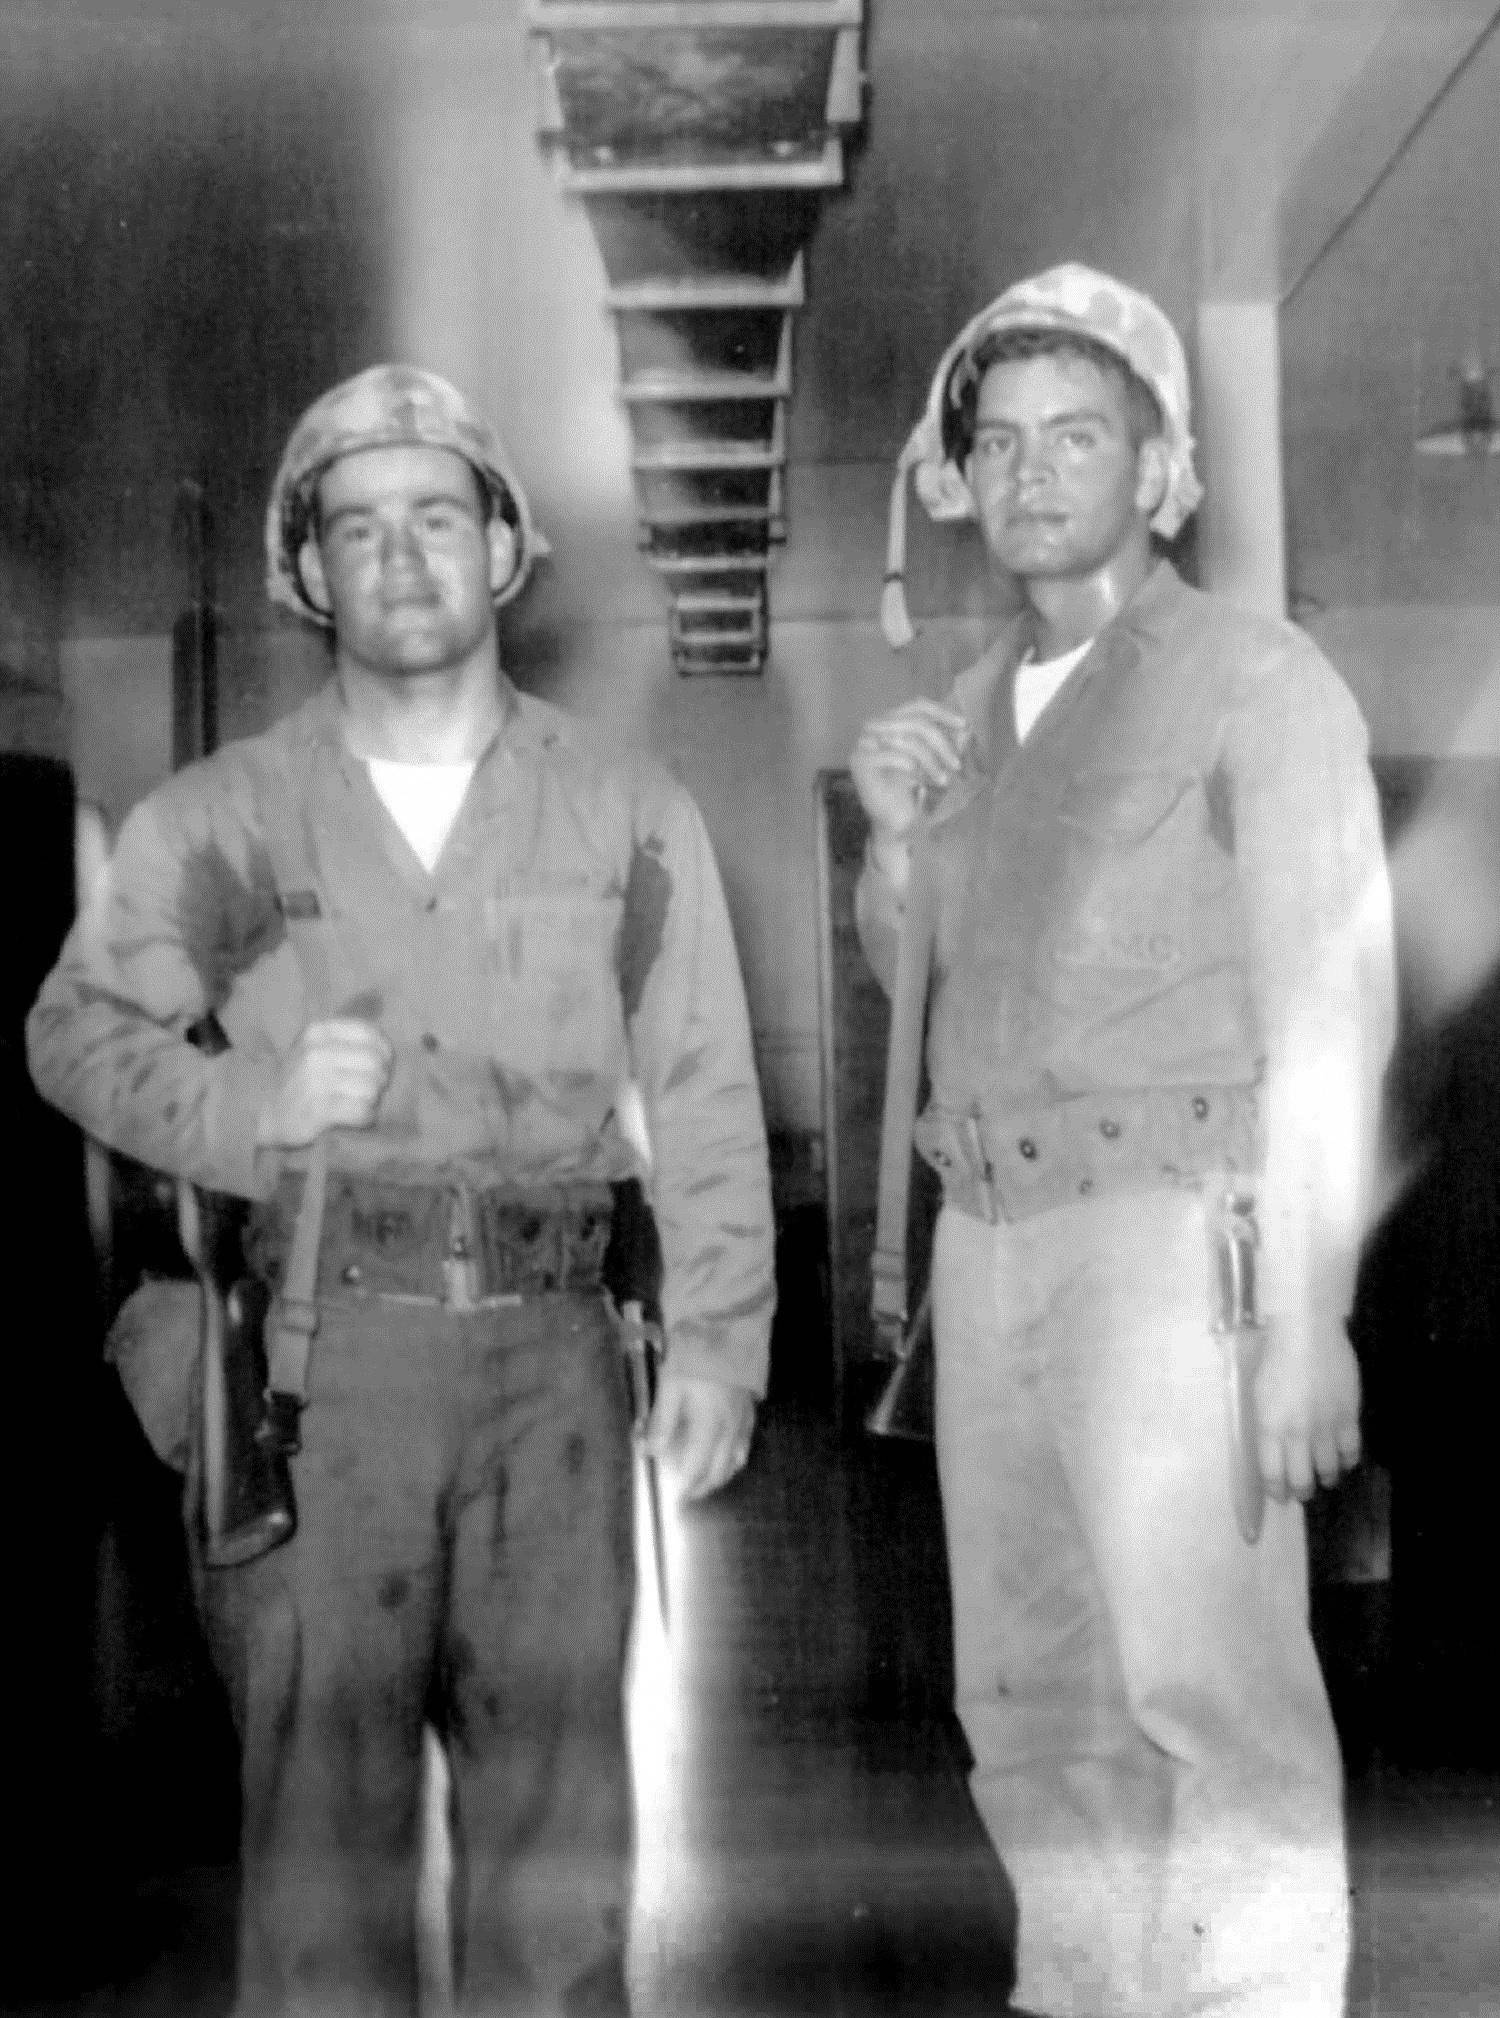 Dick Portillo, right, served with the First Marine Division at Camp Pendleton, California.